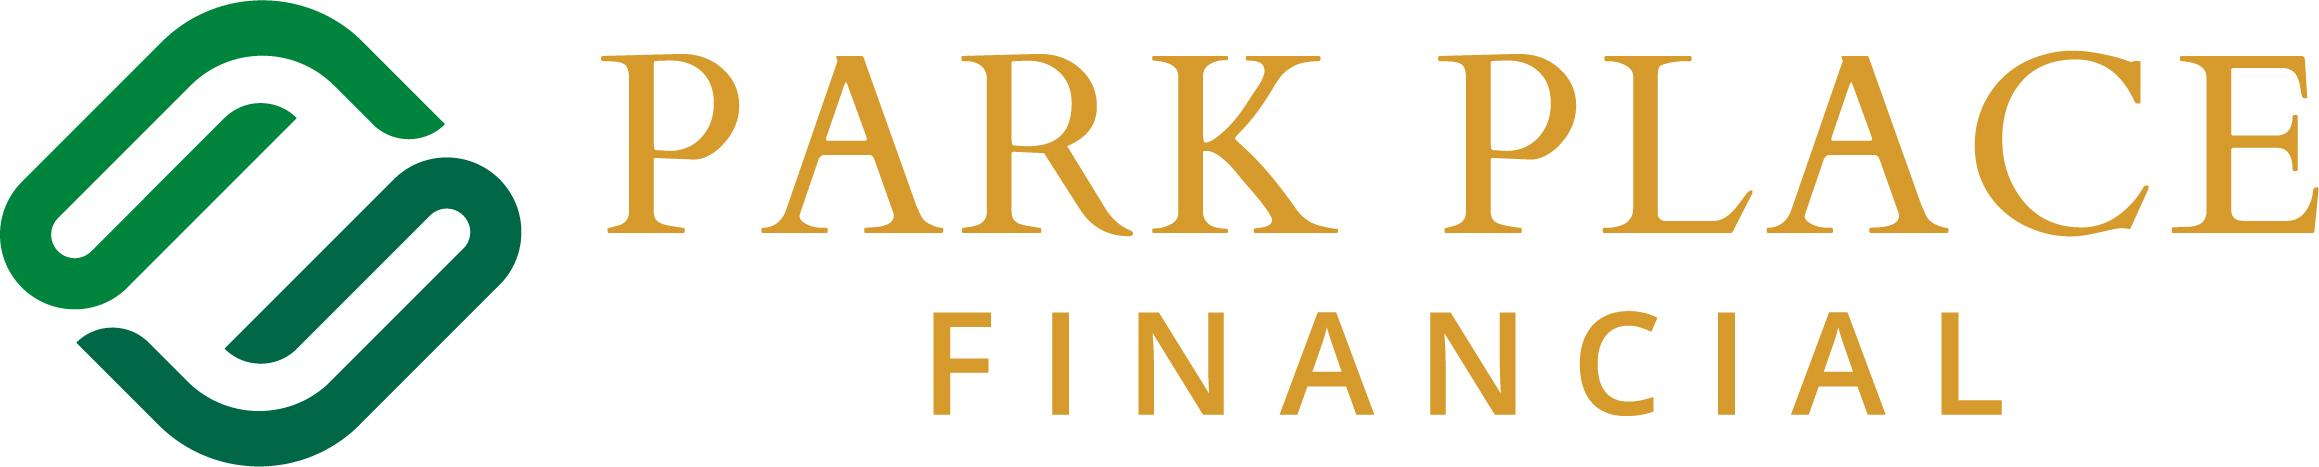 Park Place Financial